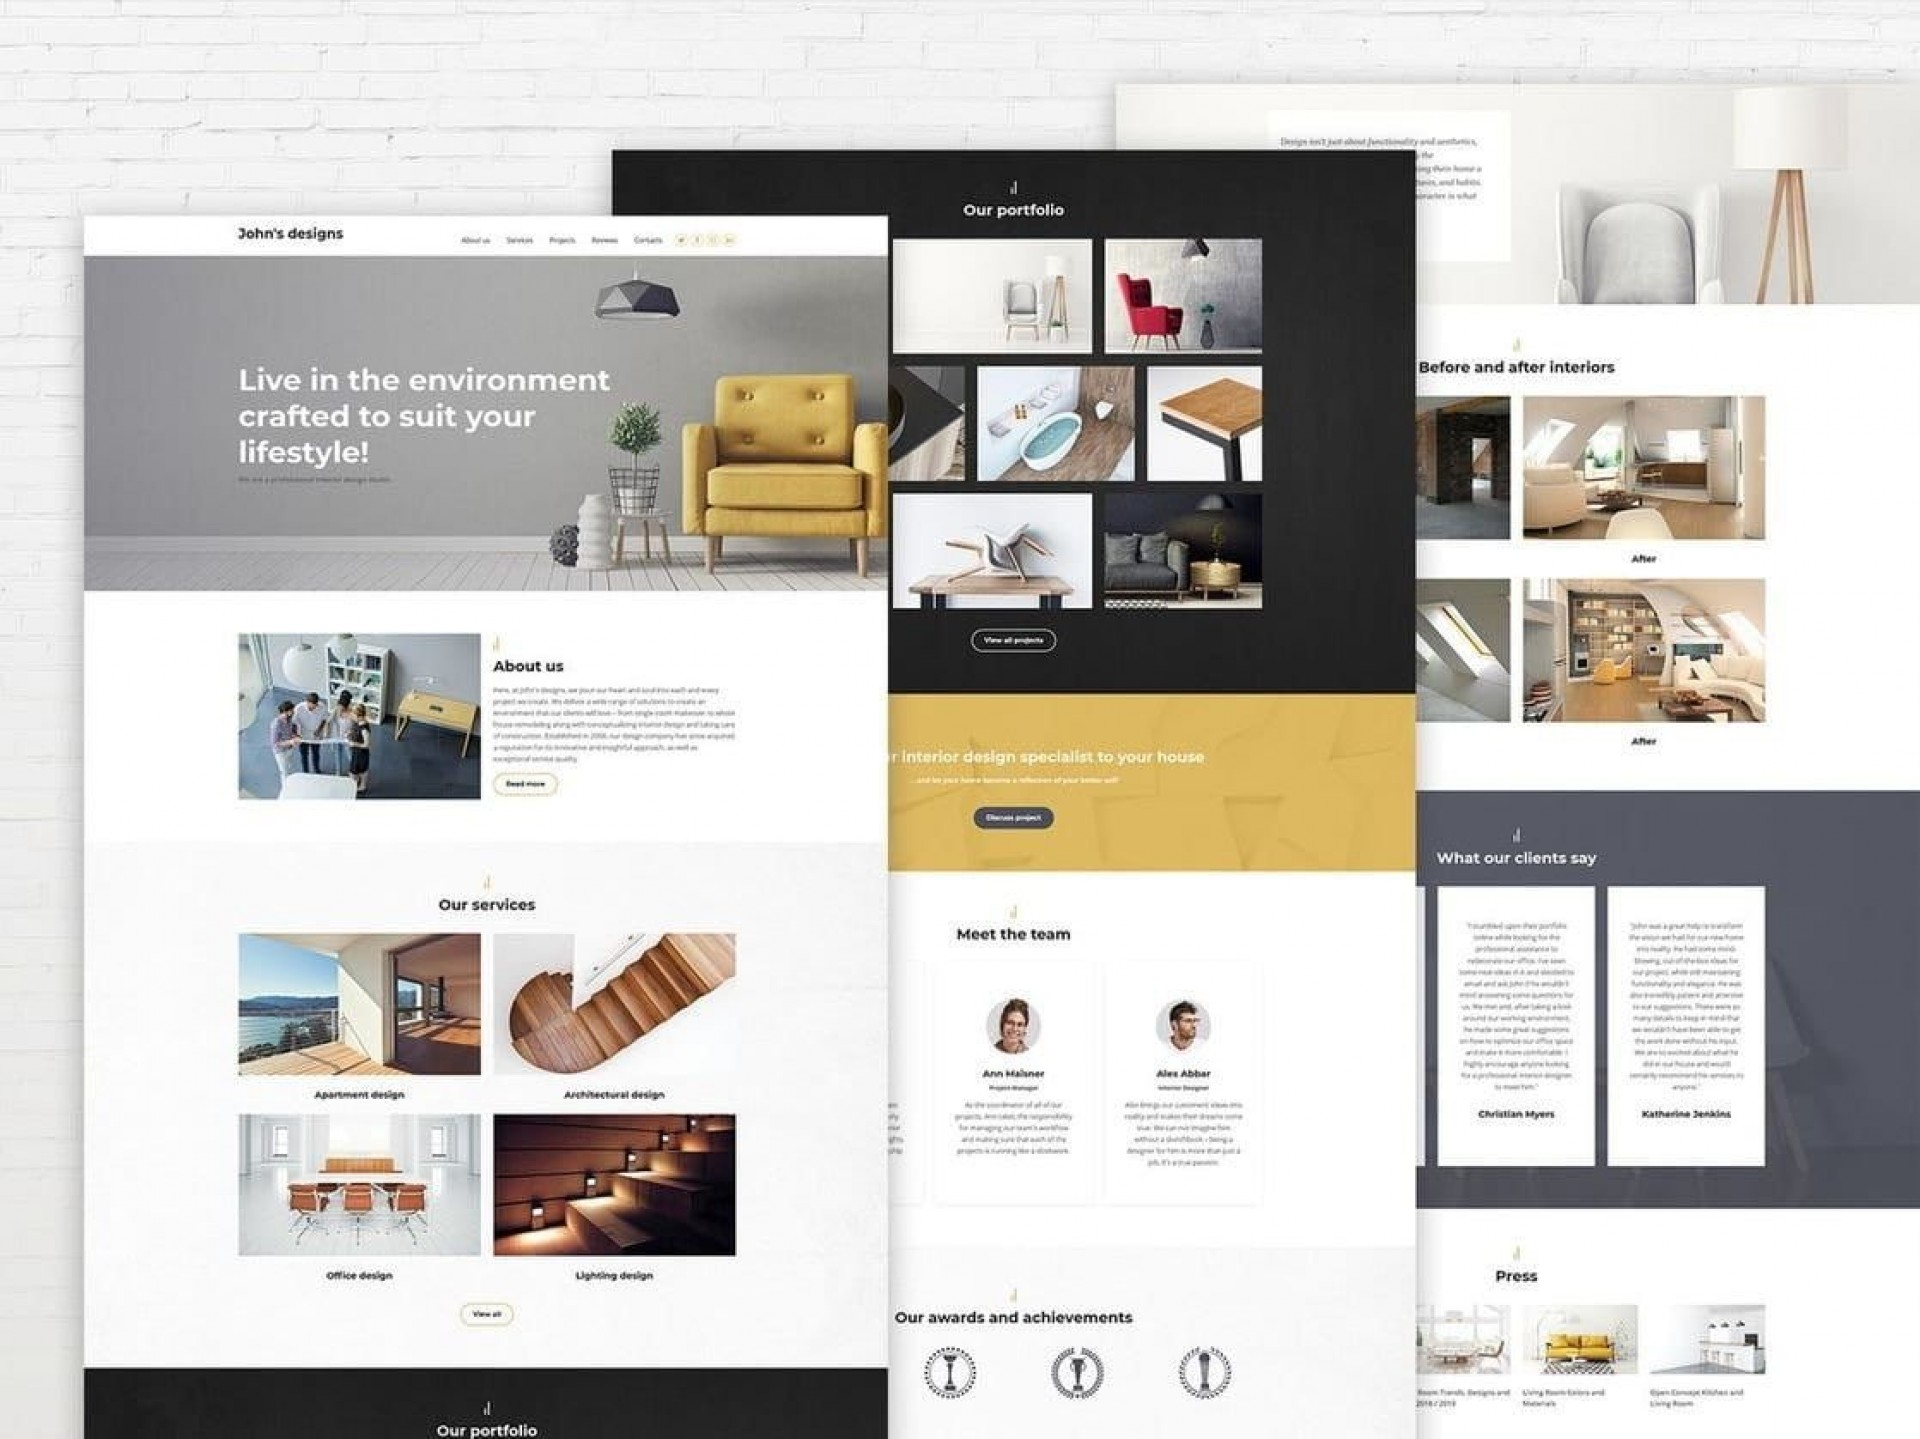 009 Exceptional Interior Design Portfolio Template High Def  Ppt Free Download Layout1920